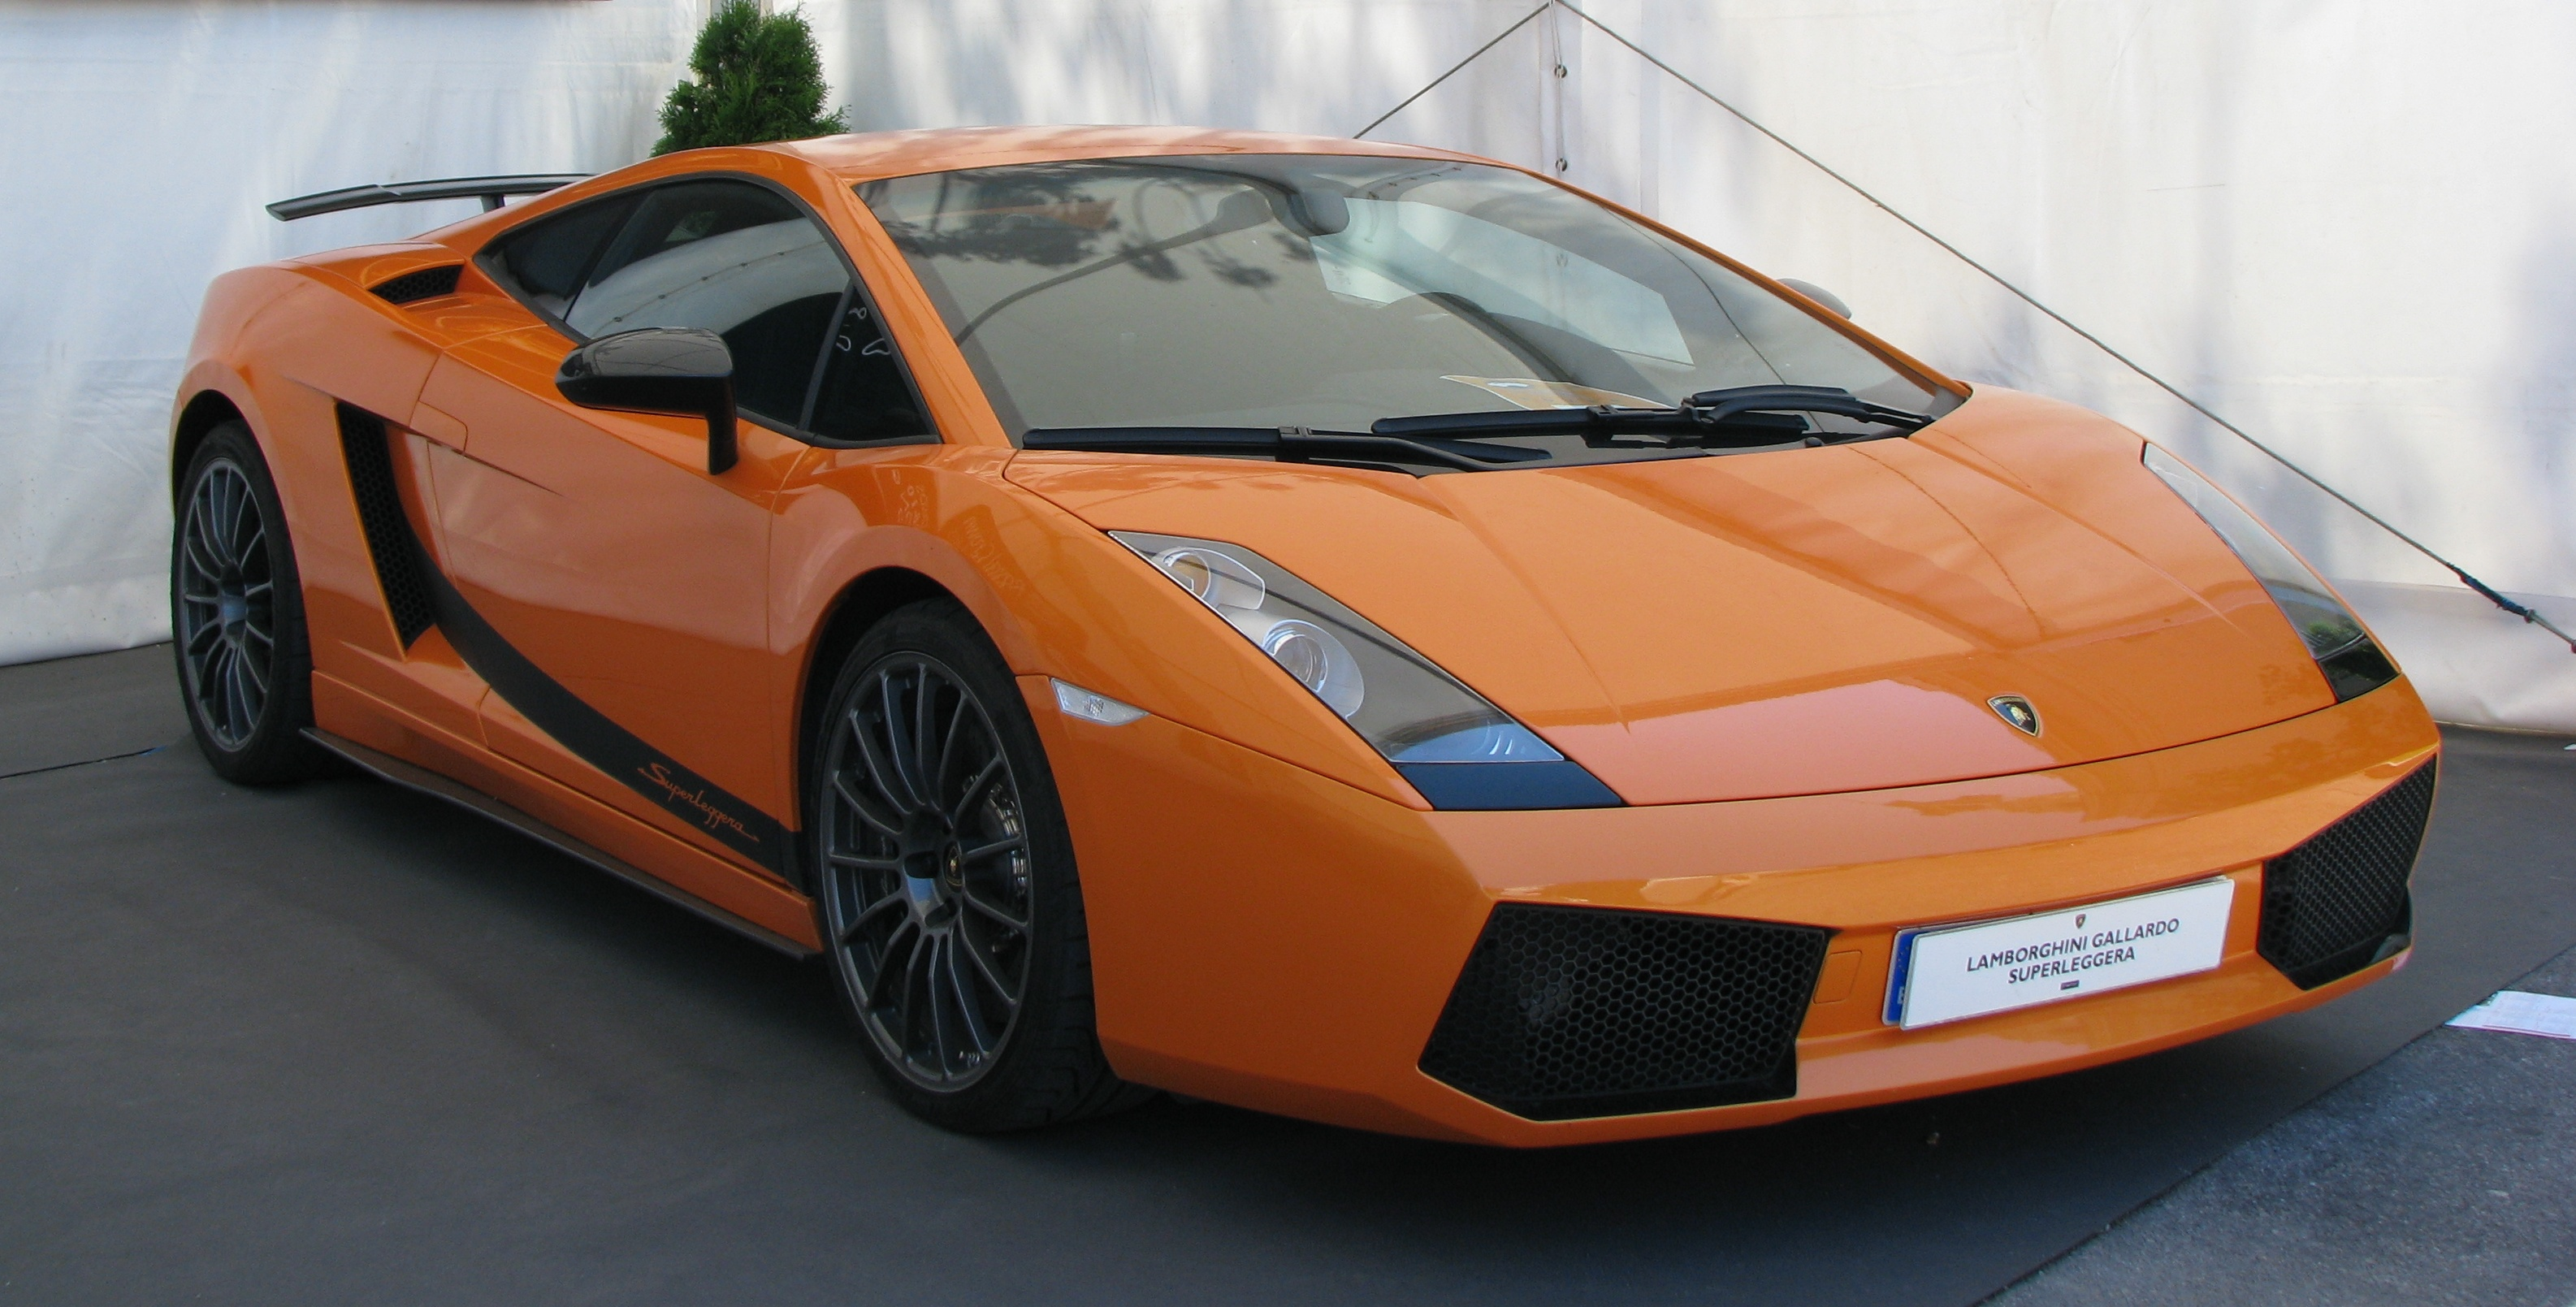 Lamborghini Gallardo Superleggera 4